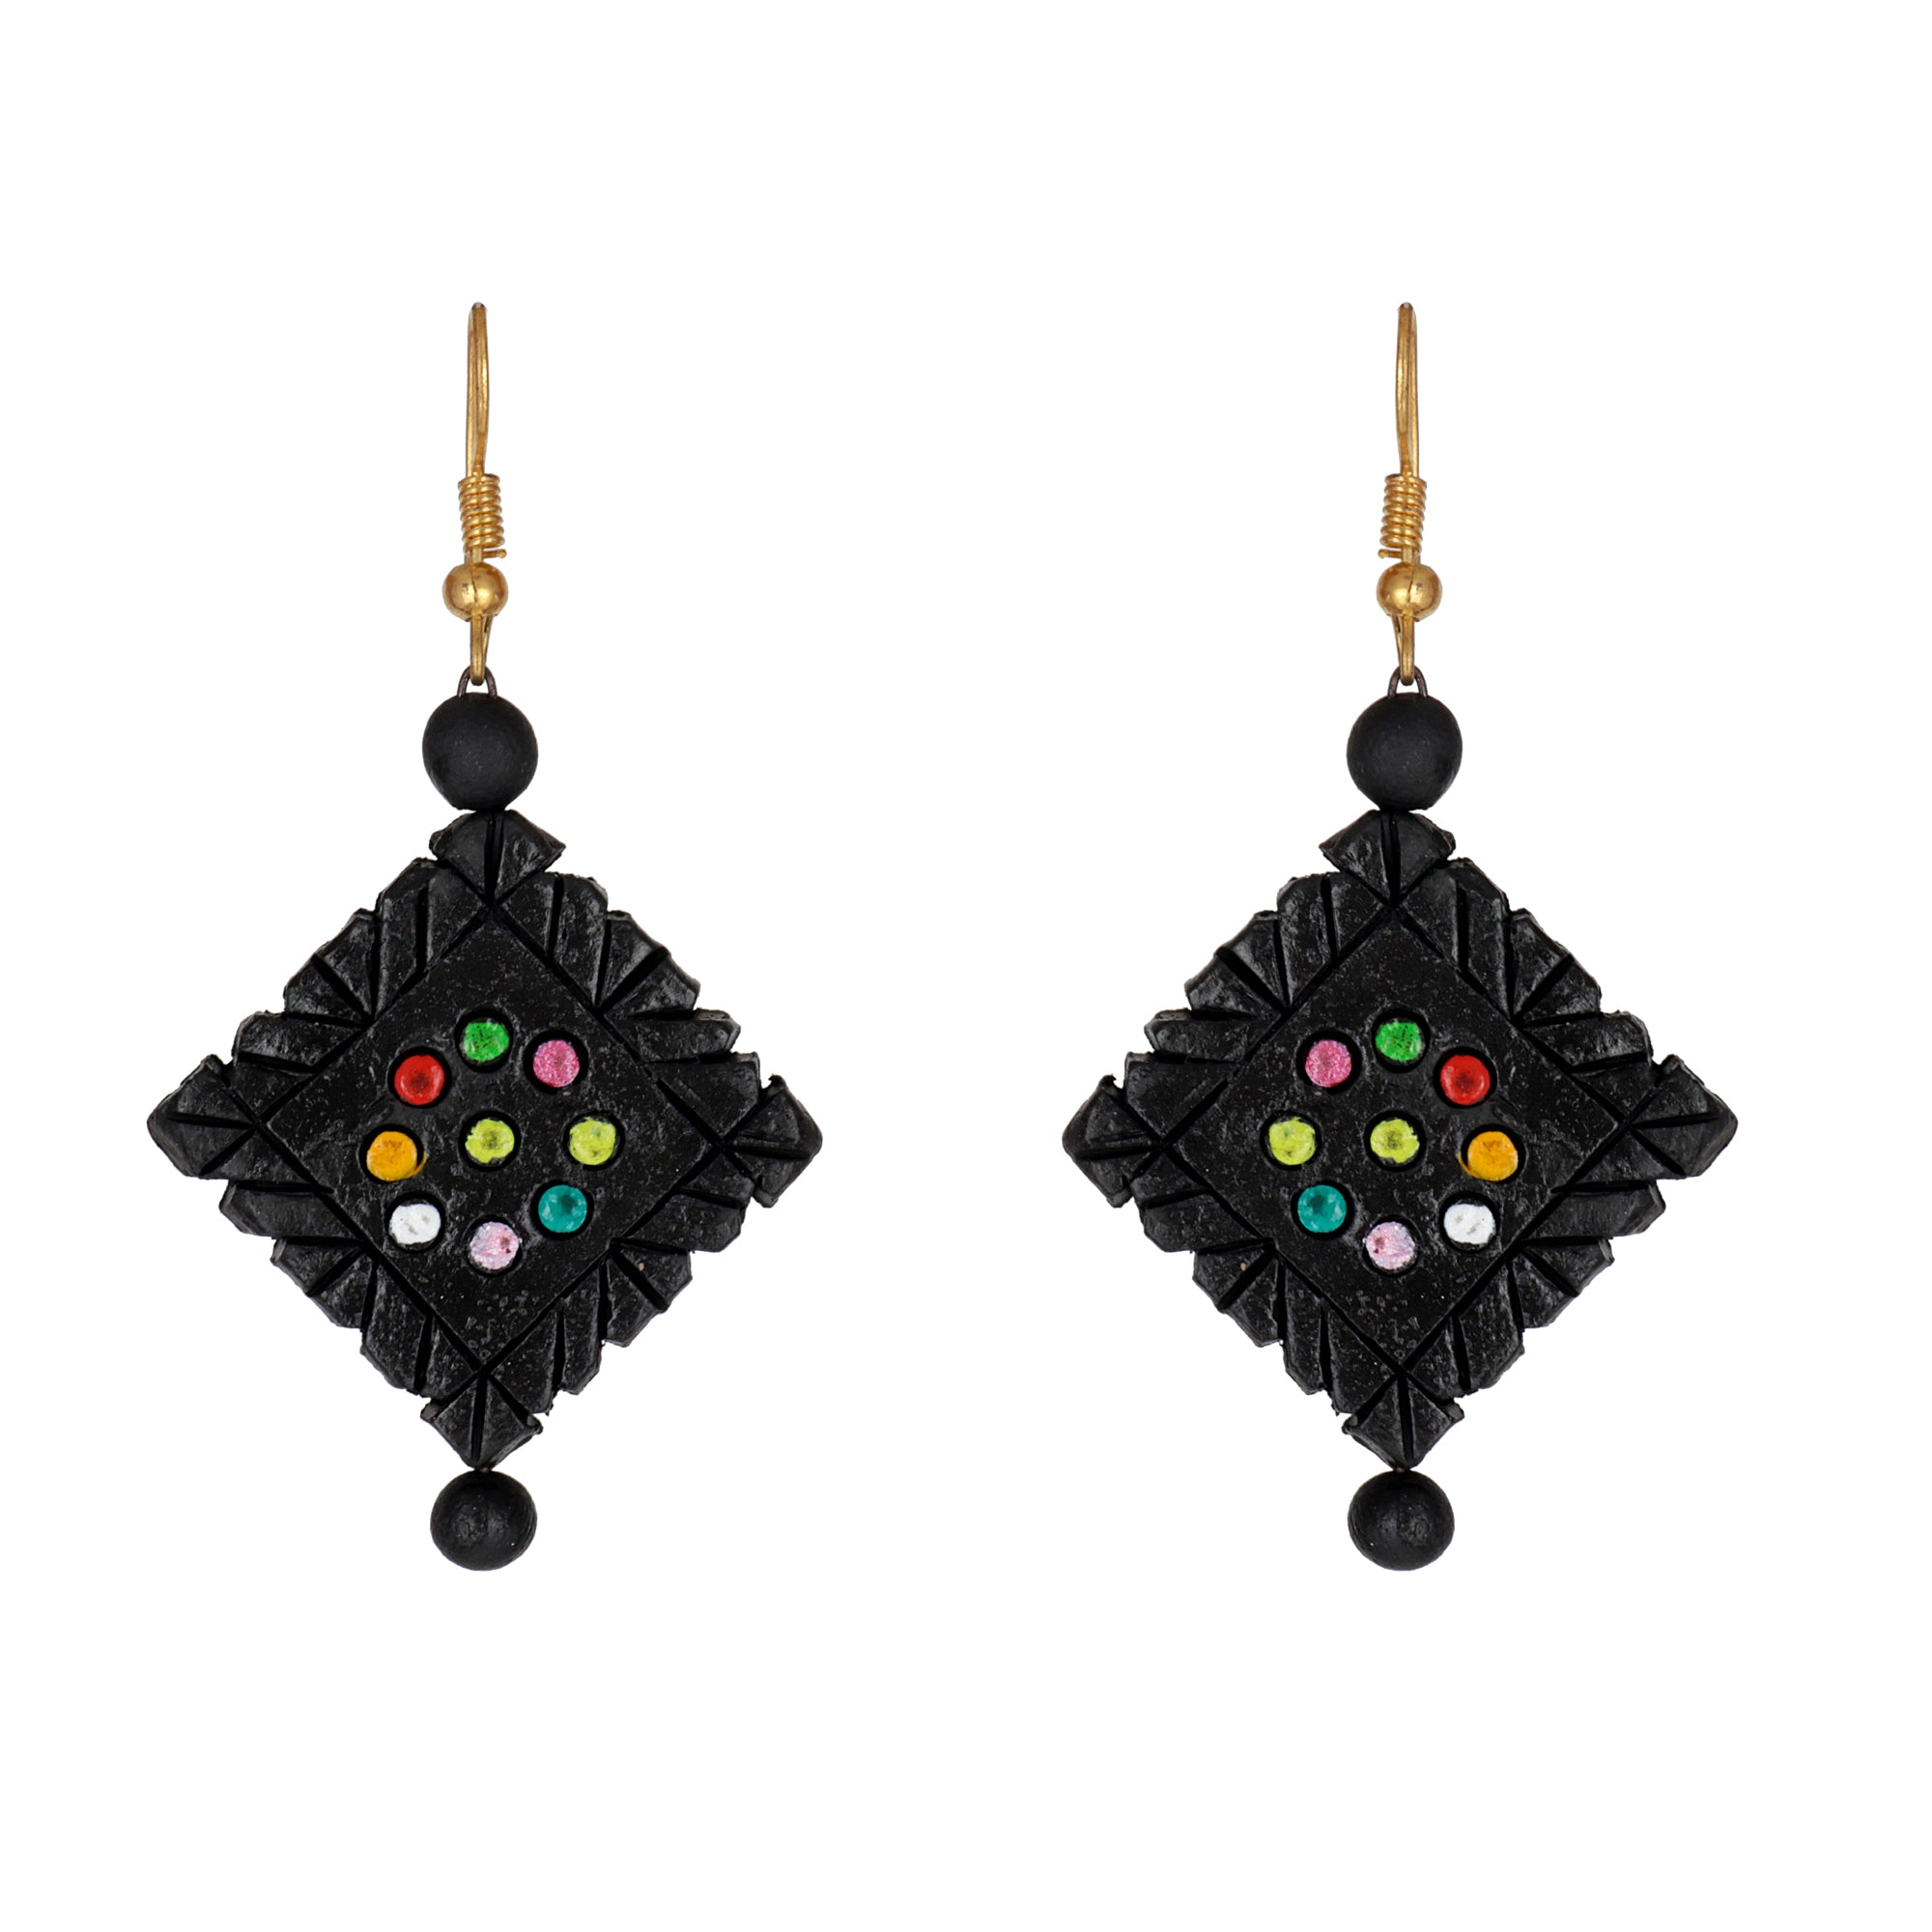 Indian Terracotta Handcrafted Vintage All Black Style Fashion Jewelry